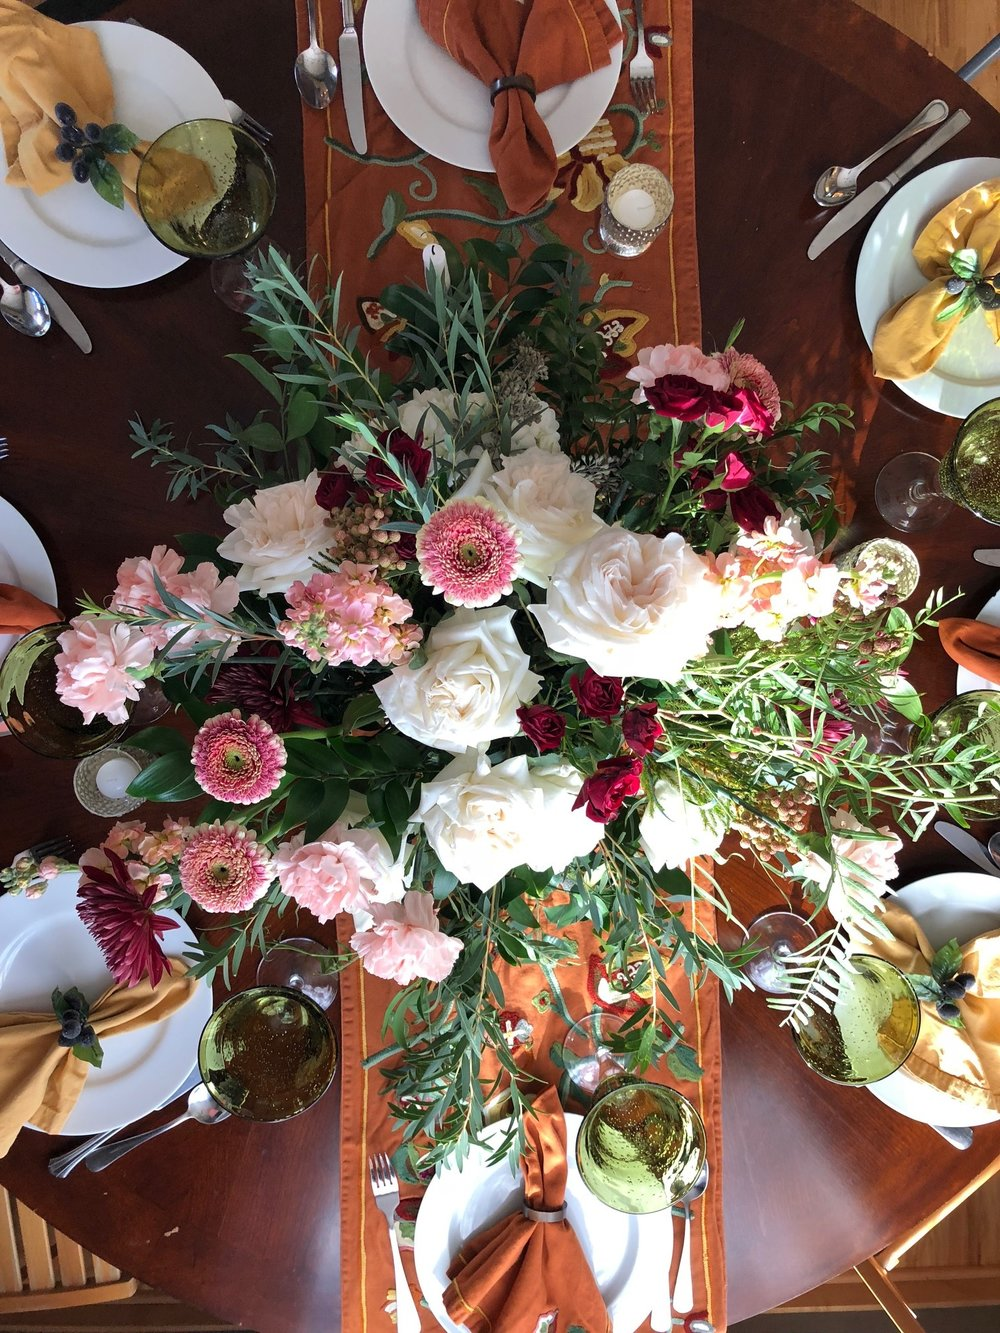 The Thanksgiving table setting was extra special this year! Who says you can't have pink flowers on Thanksgiving!